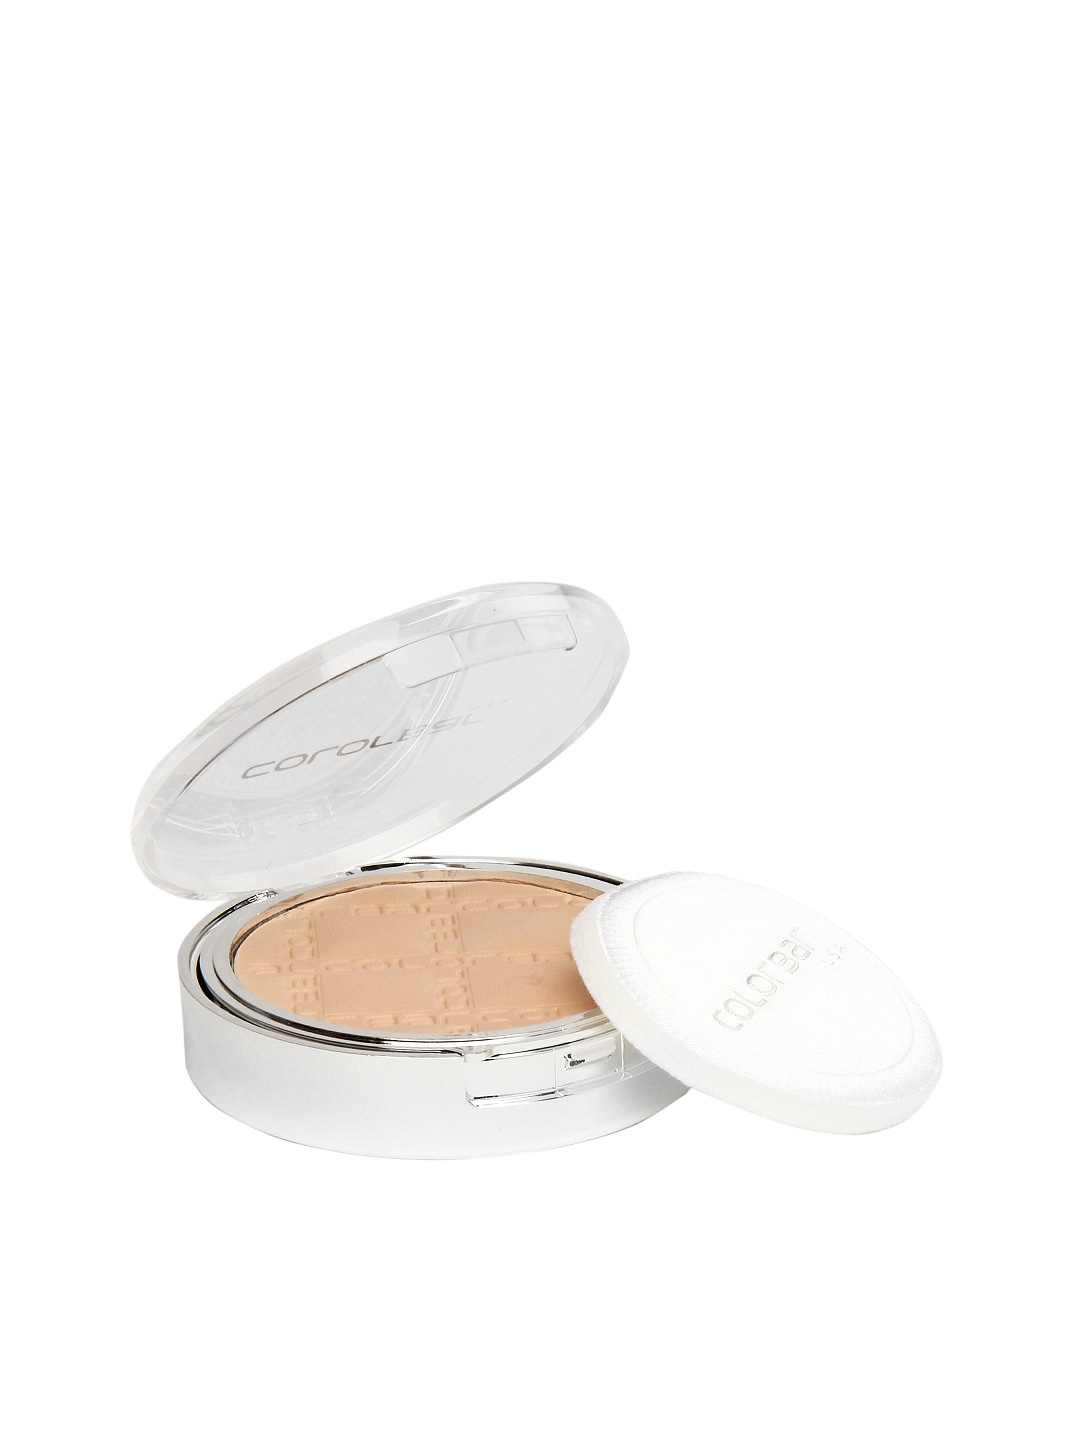 Colorbar Sweet Shell Timeless Filling and Lifting Compact 003 image